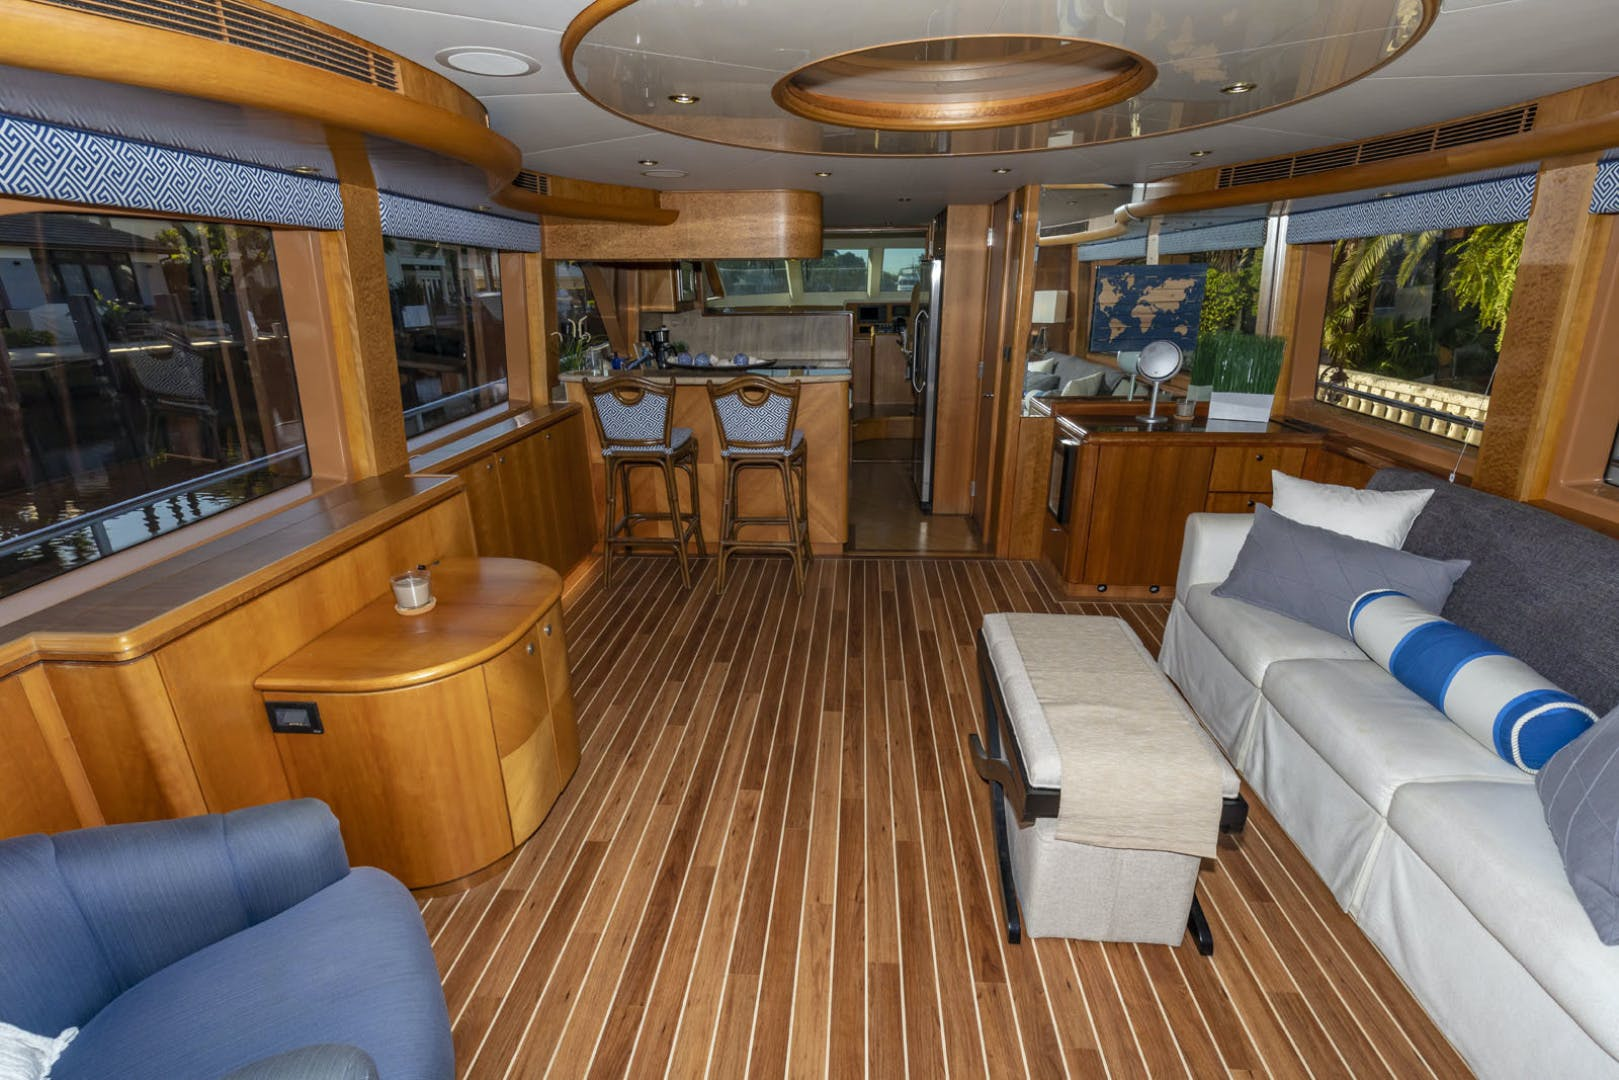 2005 Cheoy Lee 68' 68 Motor Yacht VENTURE | Picture 2 of 92